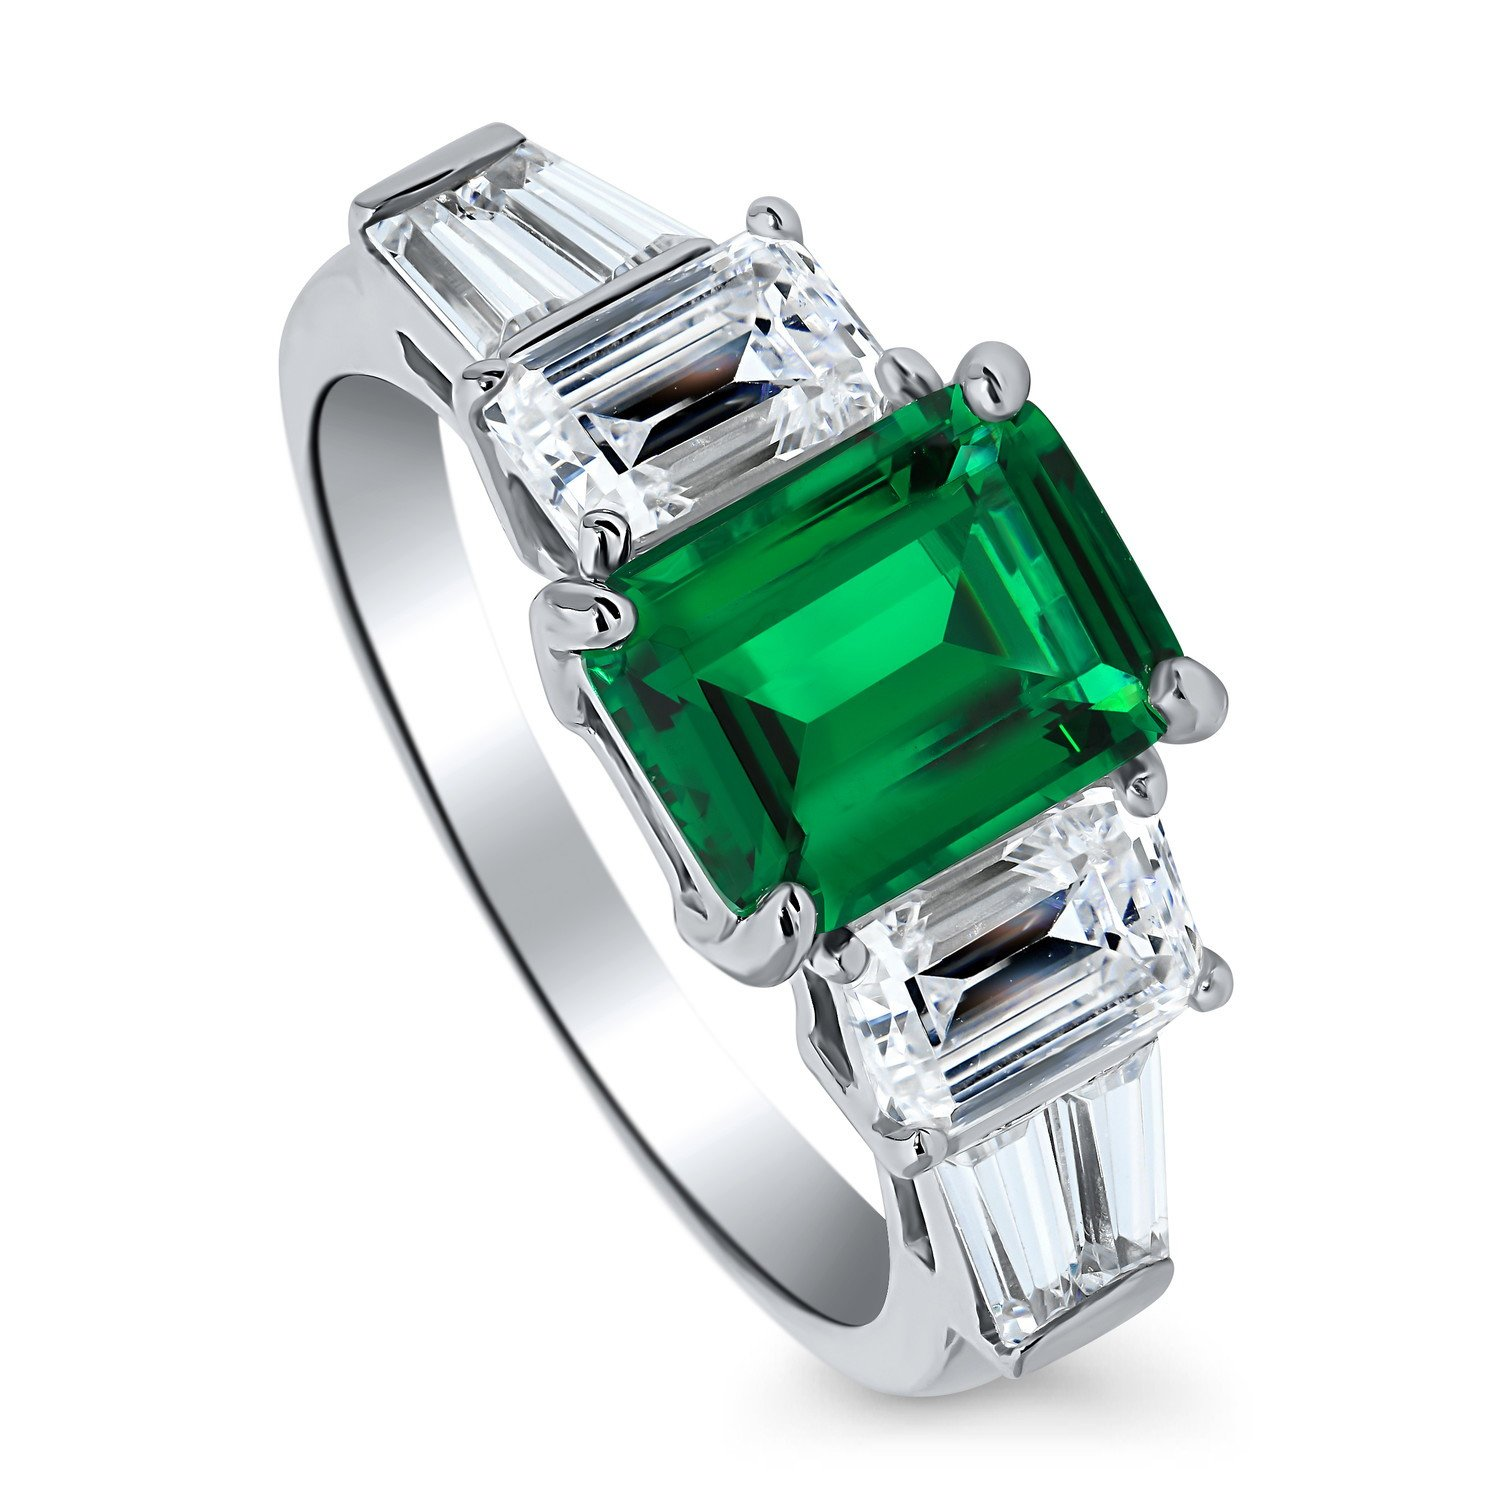 BERRICLE Rhodium Plated Silver Emerald Cut Cubic Zirconia CZ 3-Stone Engagement Ring Size 7